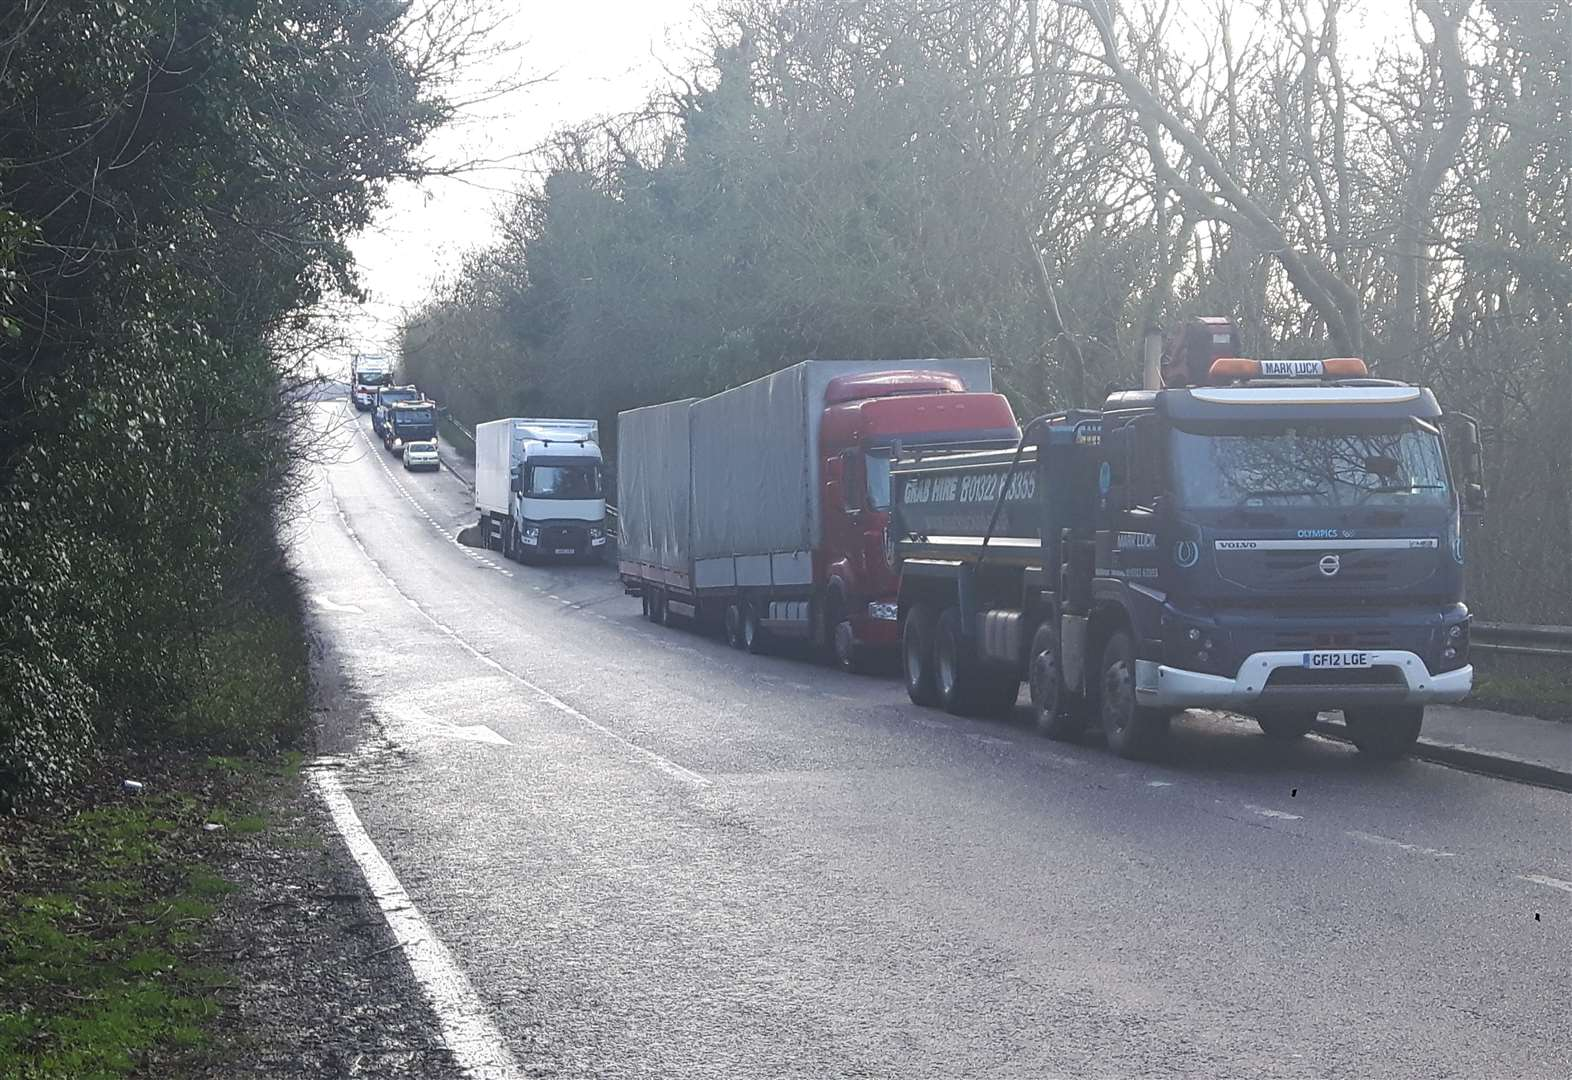 Sleepy lorry drivers could wake up to clamp